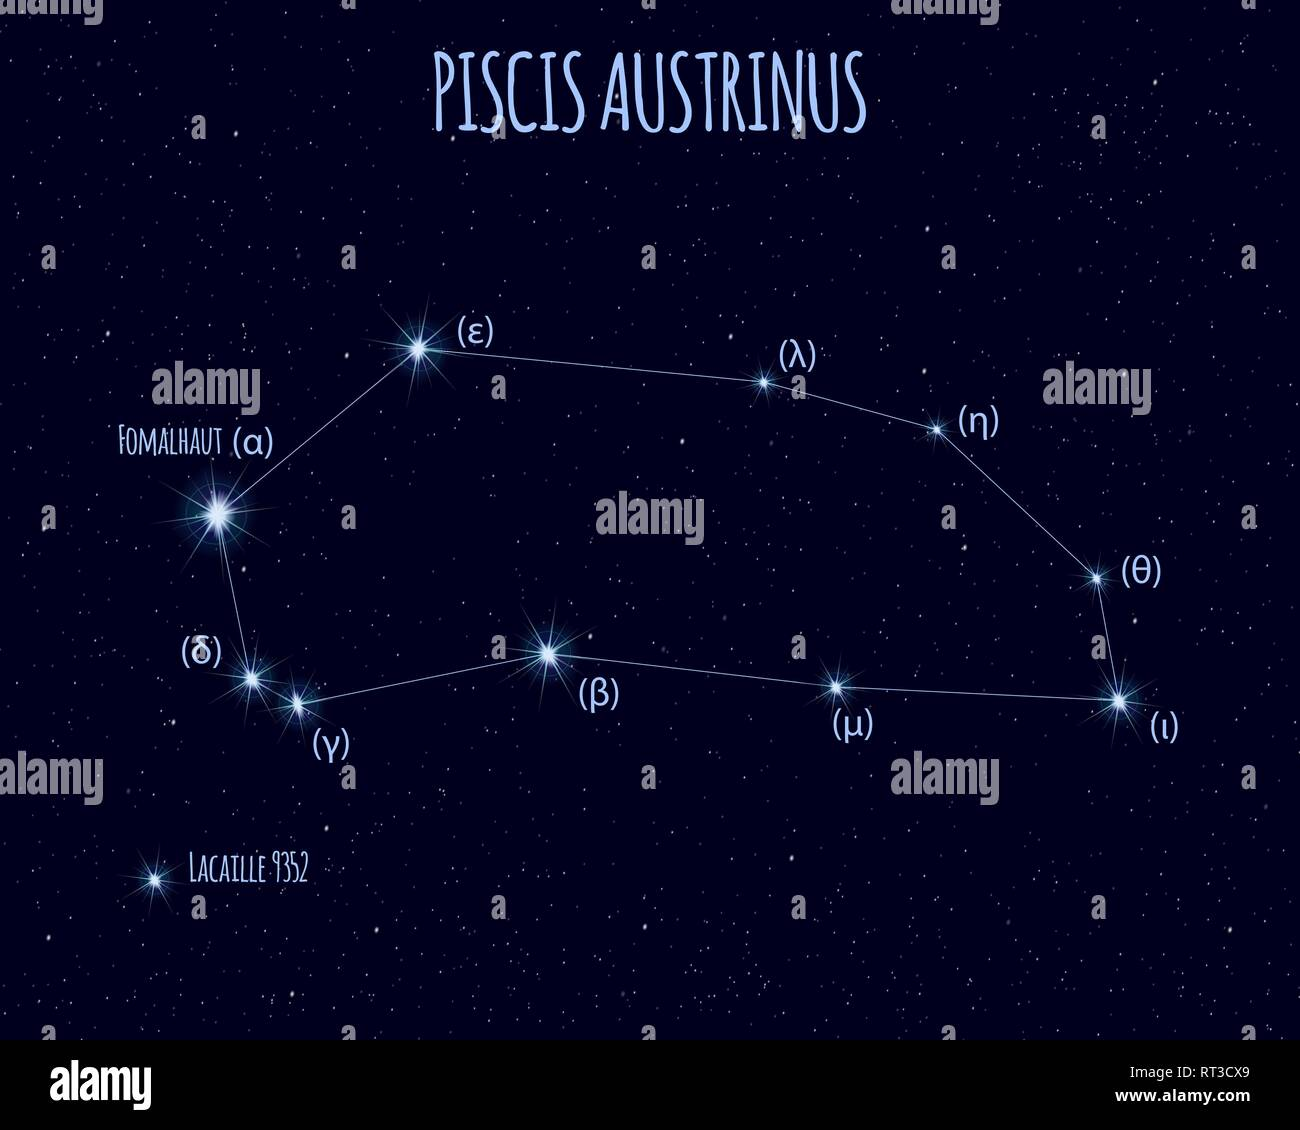 Piscis Austrinus (The Southern Fish) constellation, vector illustration with the names of basic stars against the starry sky - Stock Image